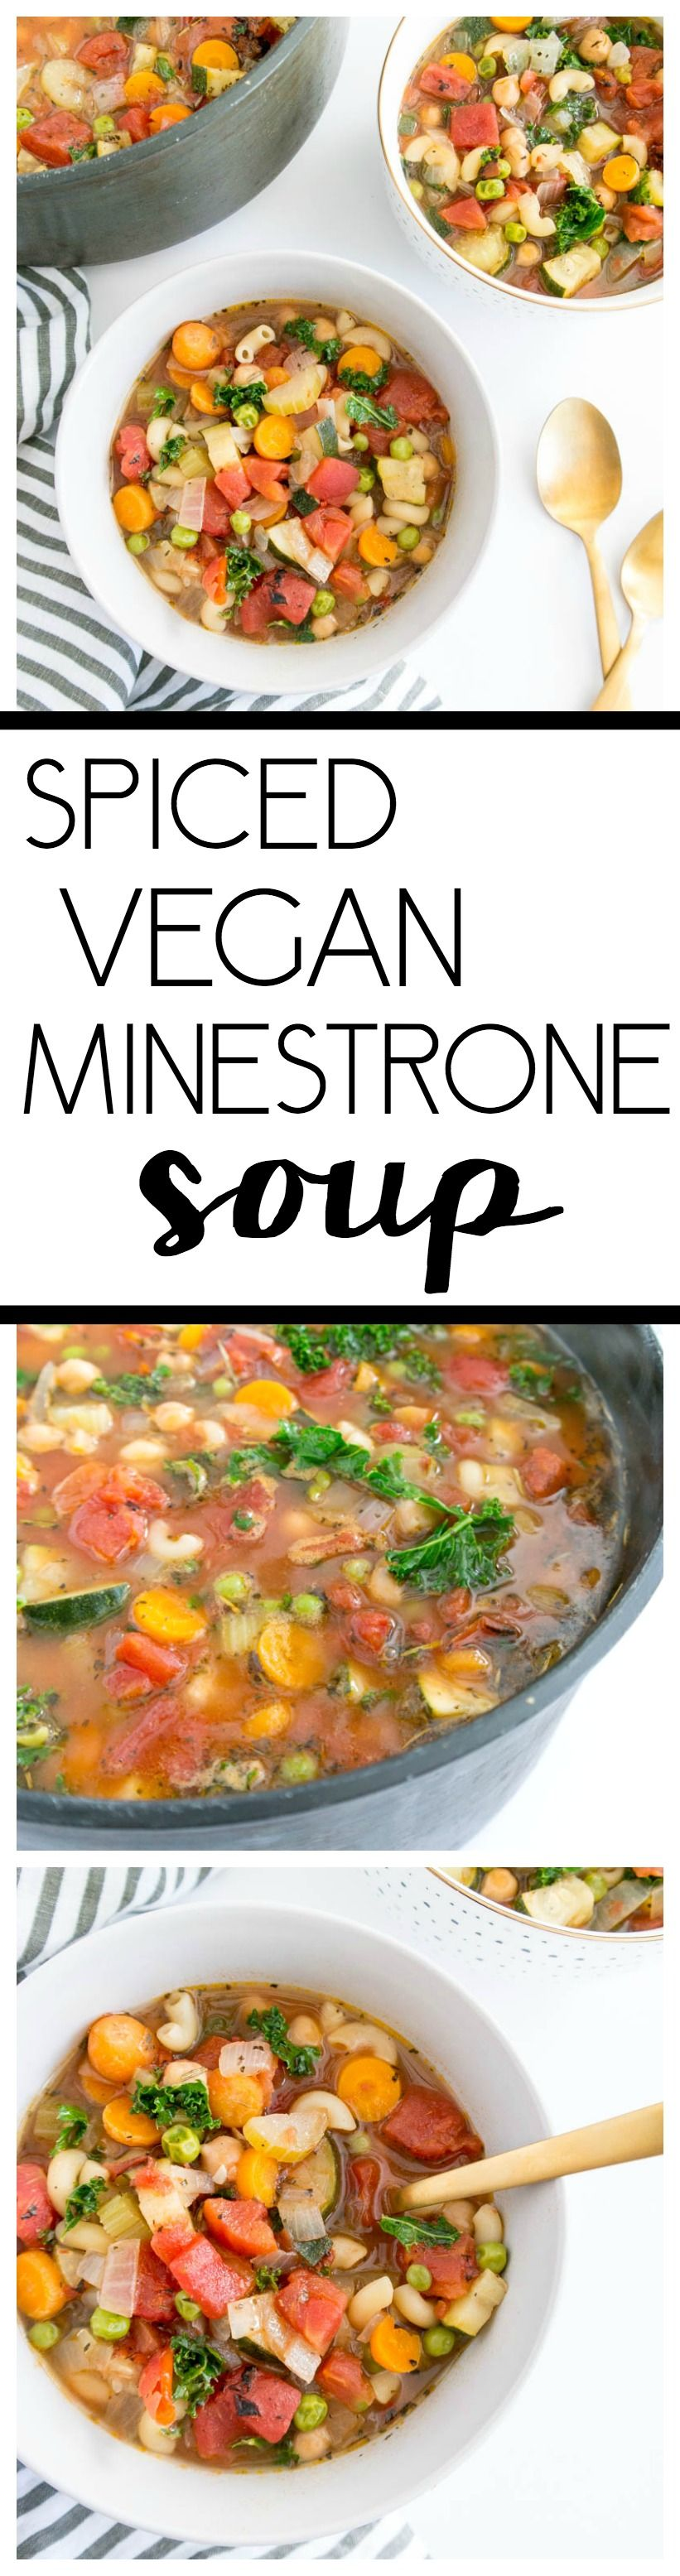 Spiced Vegan Minestrone Soup Brothy herby and packed with bright flavor This warming  comforting soup feels healing and cozy and comes together quickly